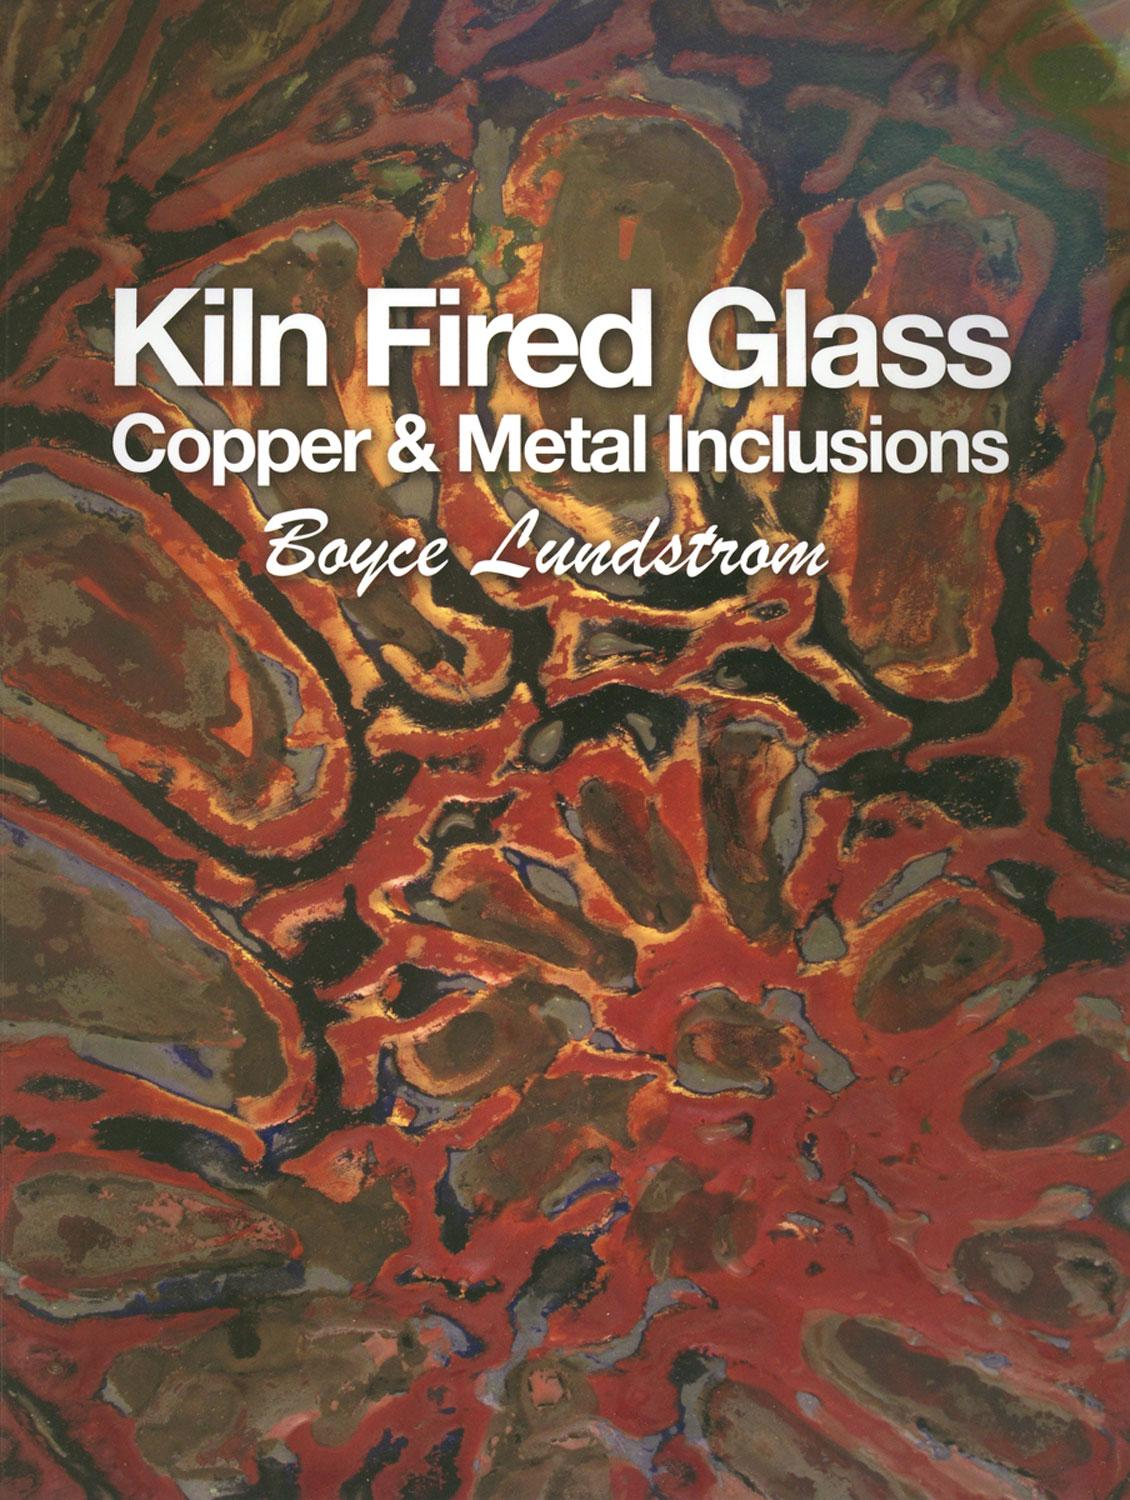 Kiln Fired Glass Copper and Metal Inclusions